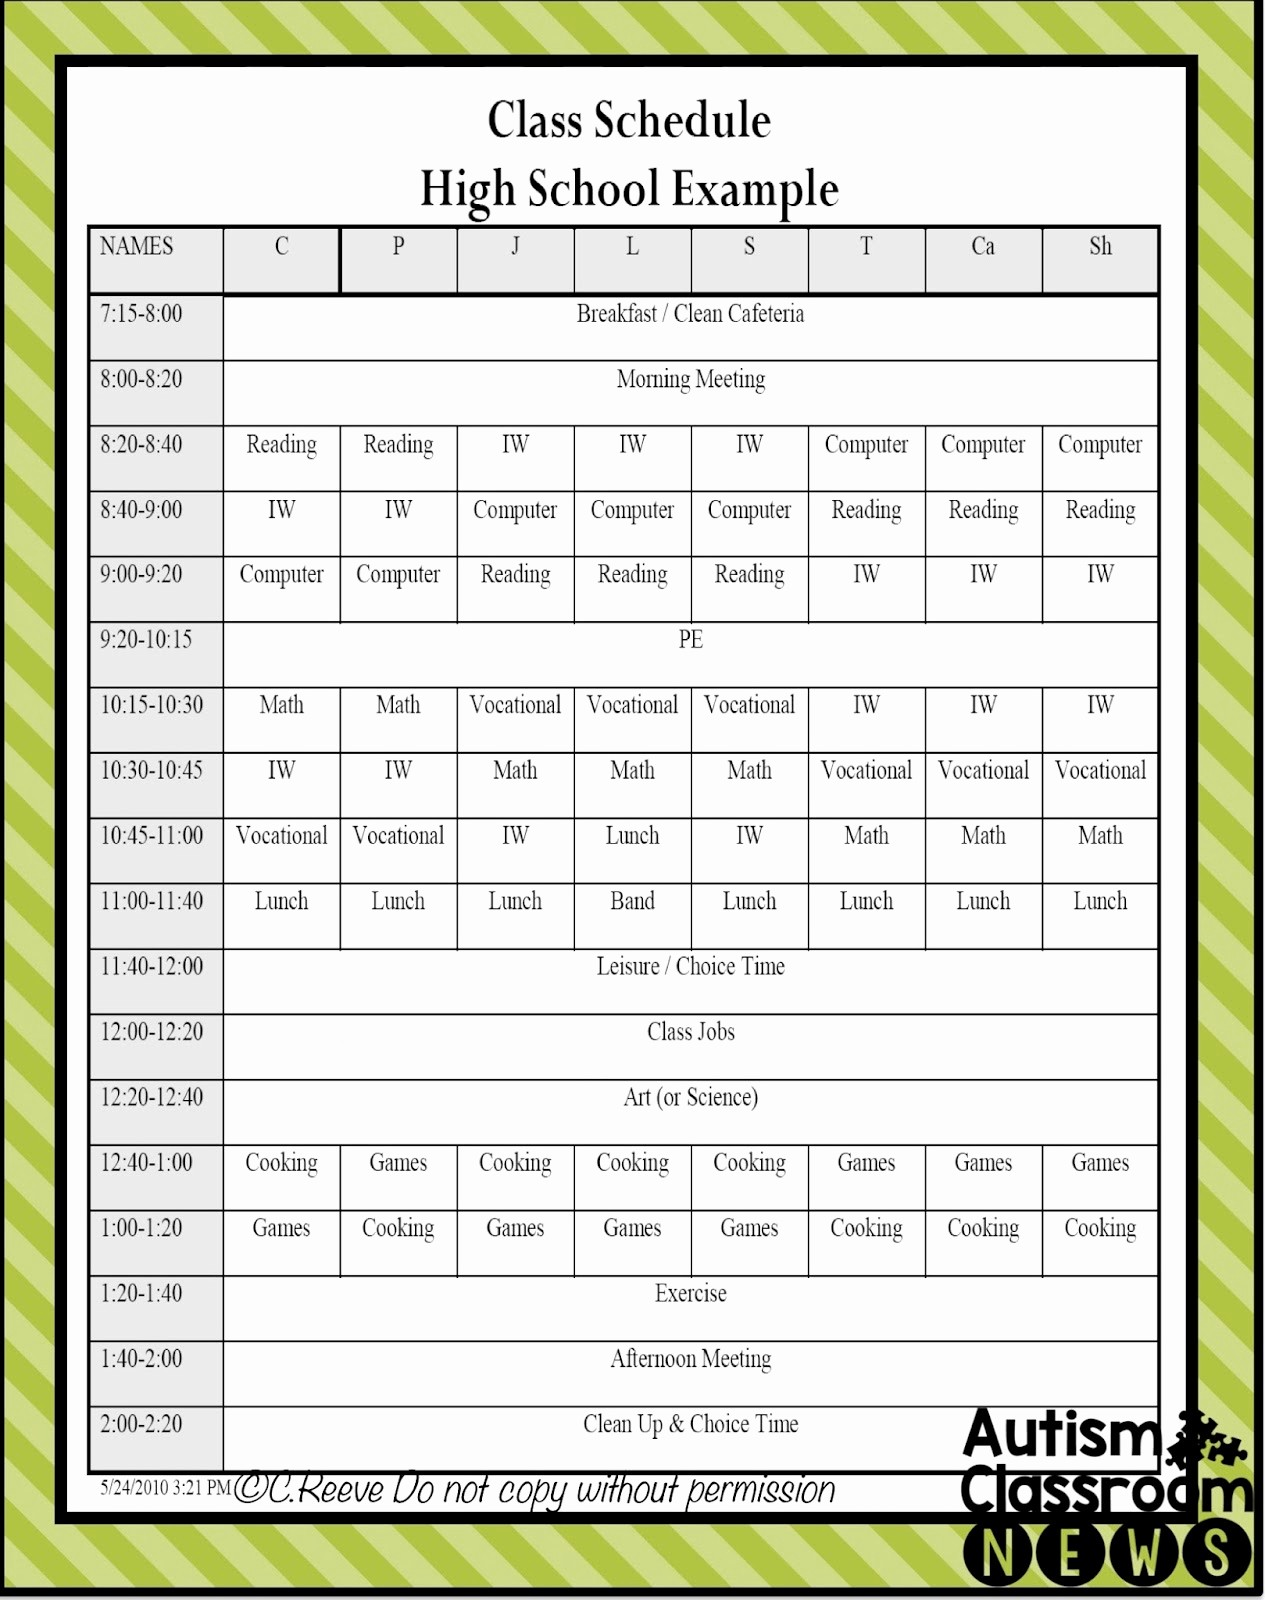 High School Class Schedule Example Luxury 5 Examples Of Setting Classroom Schedules In Special